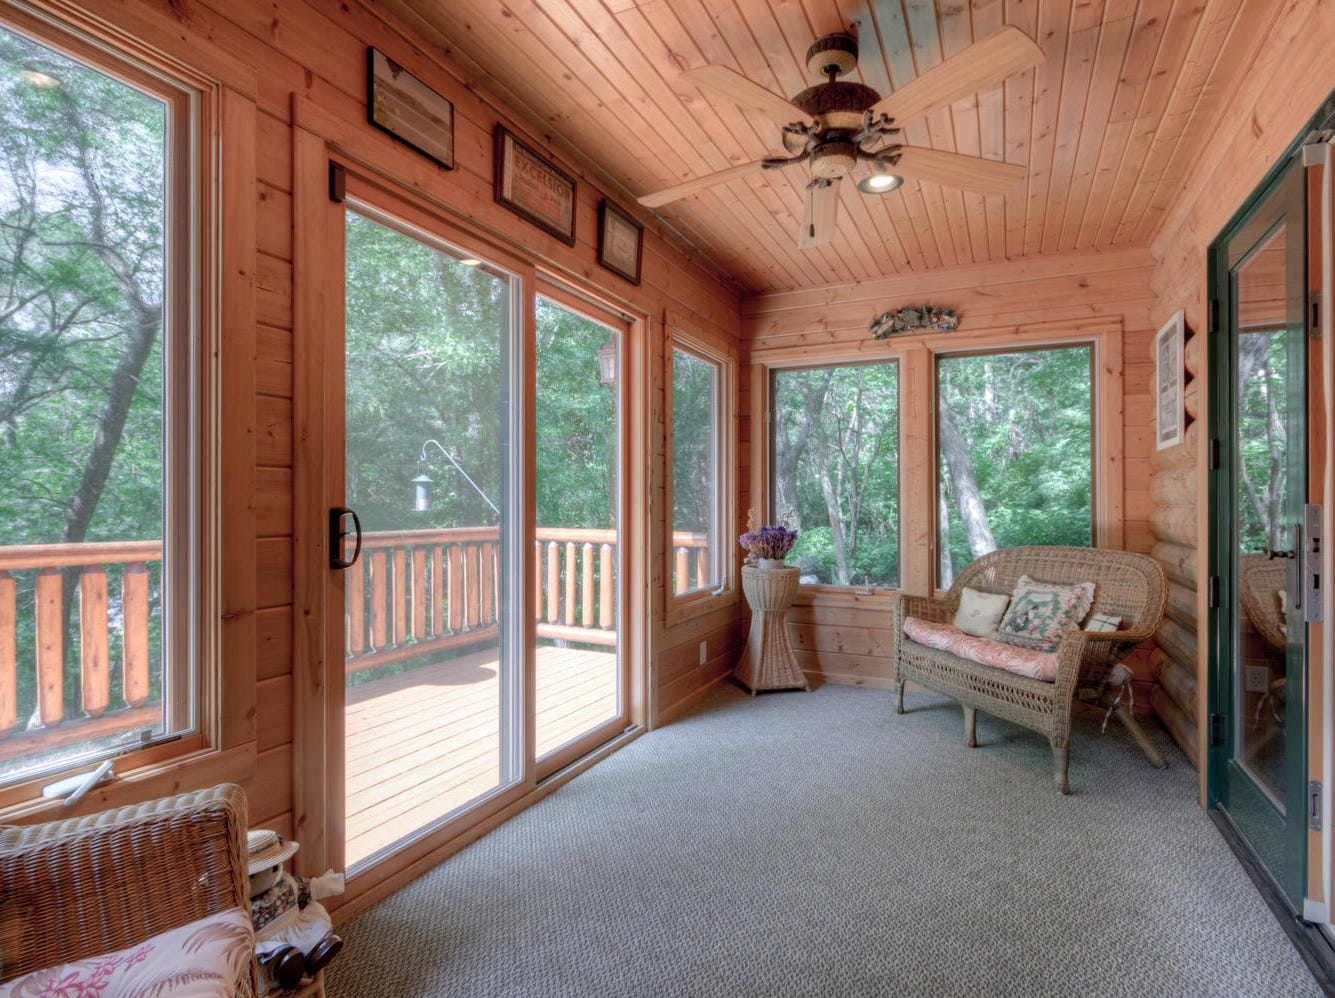 The master bedroom suite features a private sun porch.